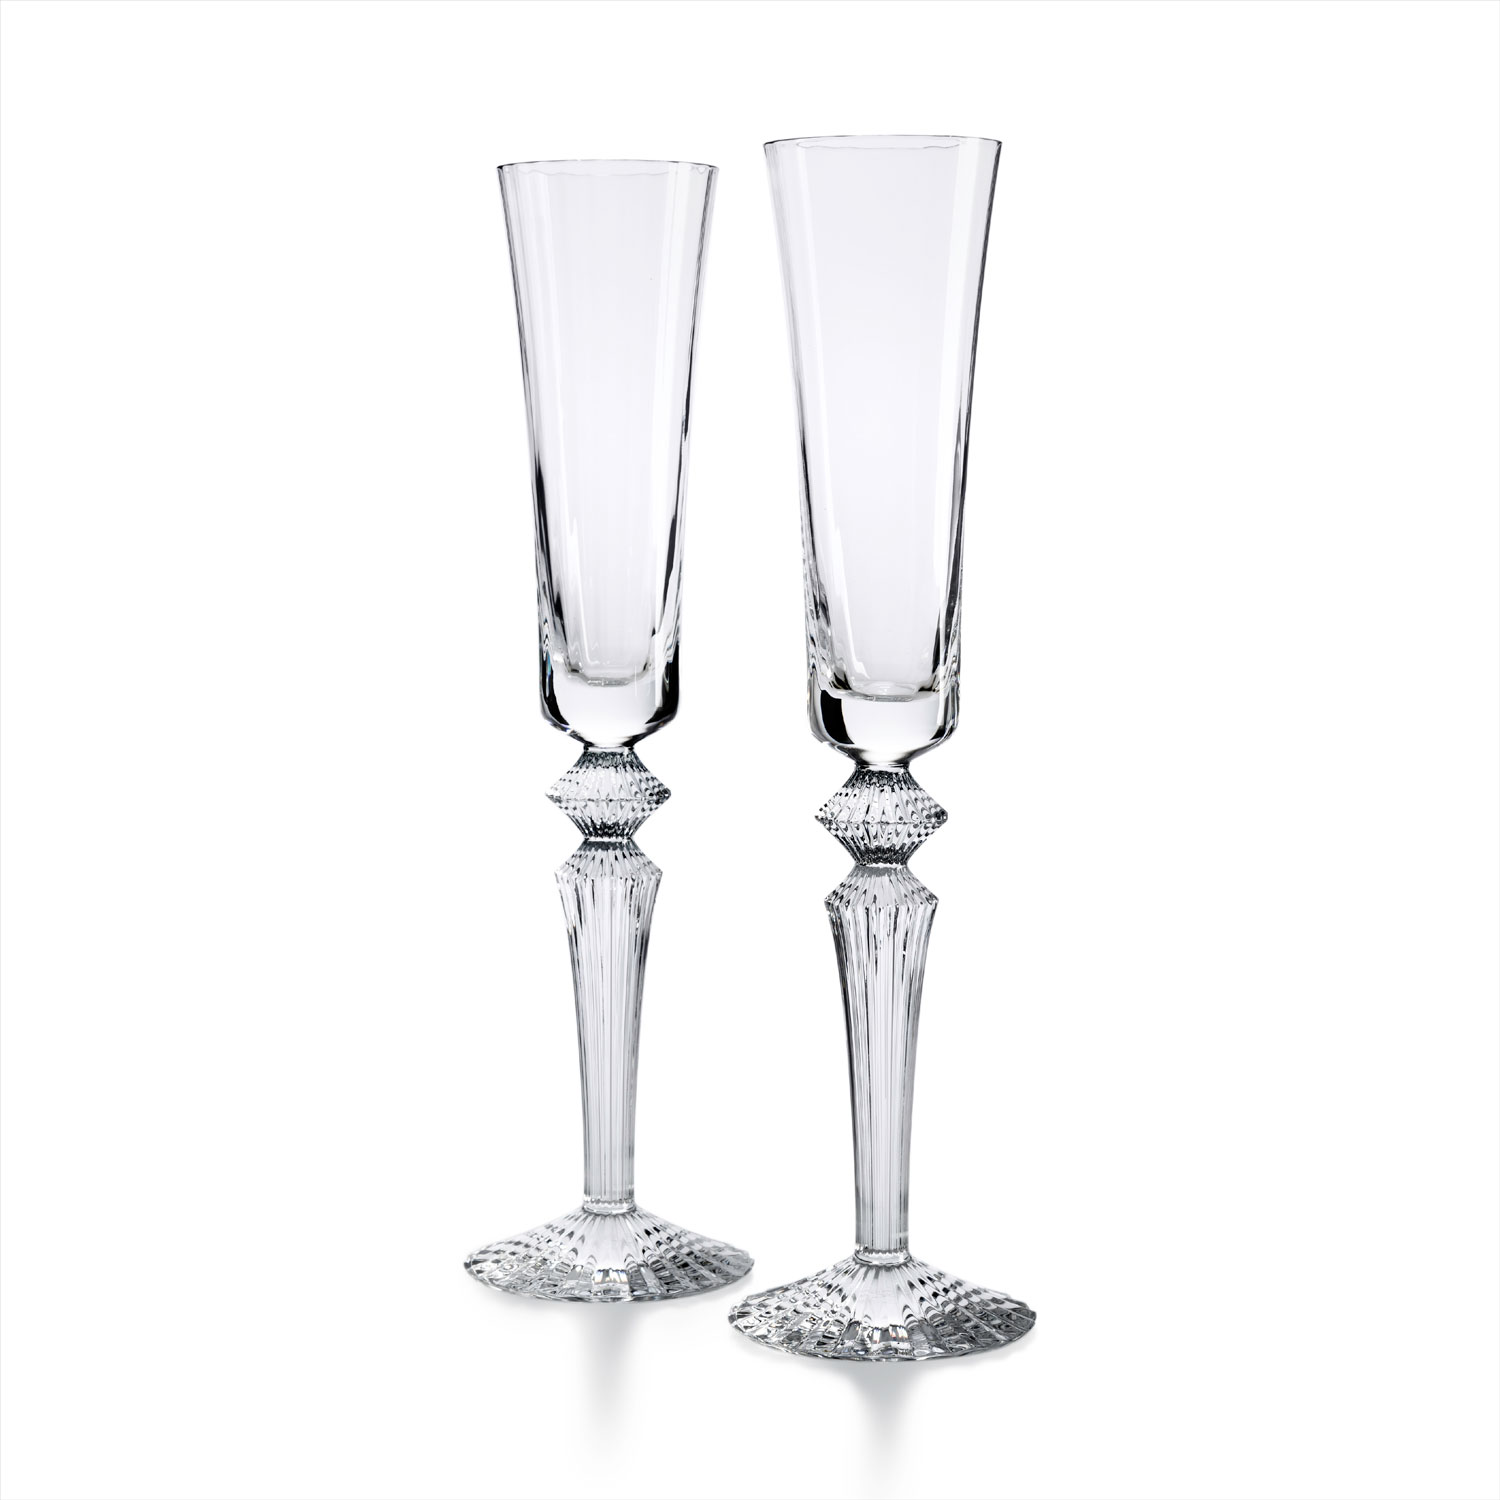 wedding registry product ideas mille nuits flutes baccarat from gearys